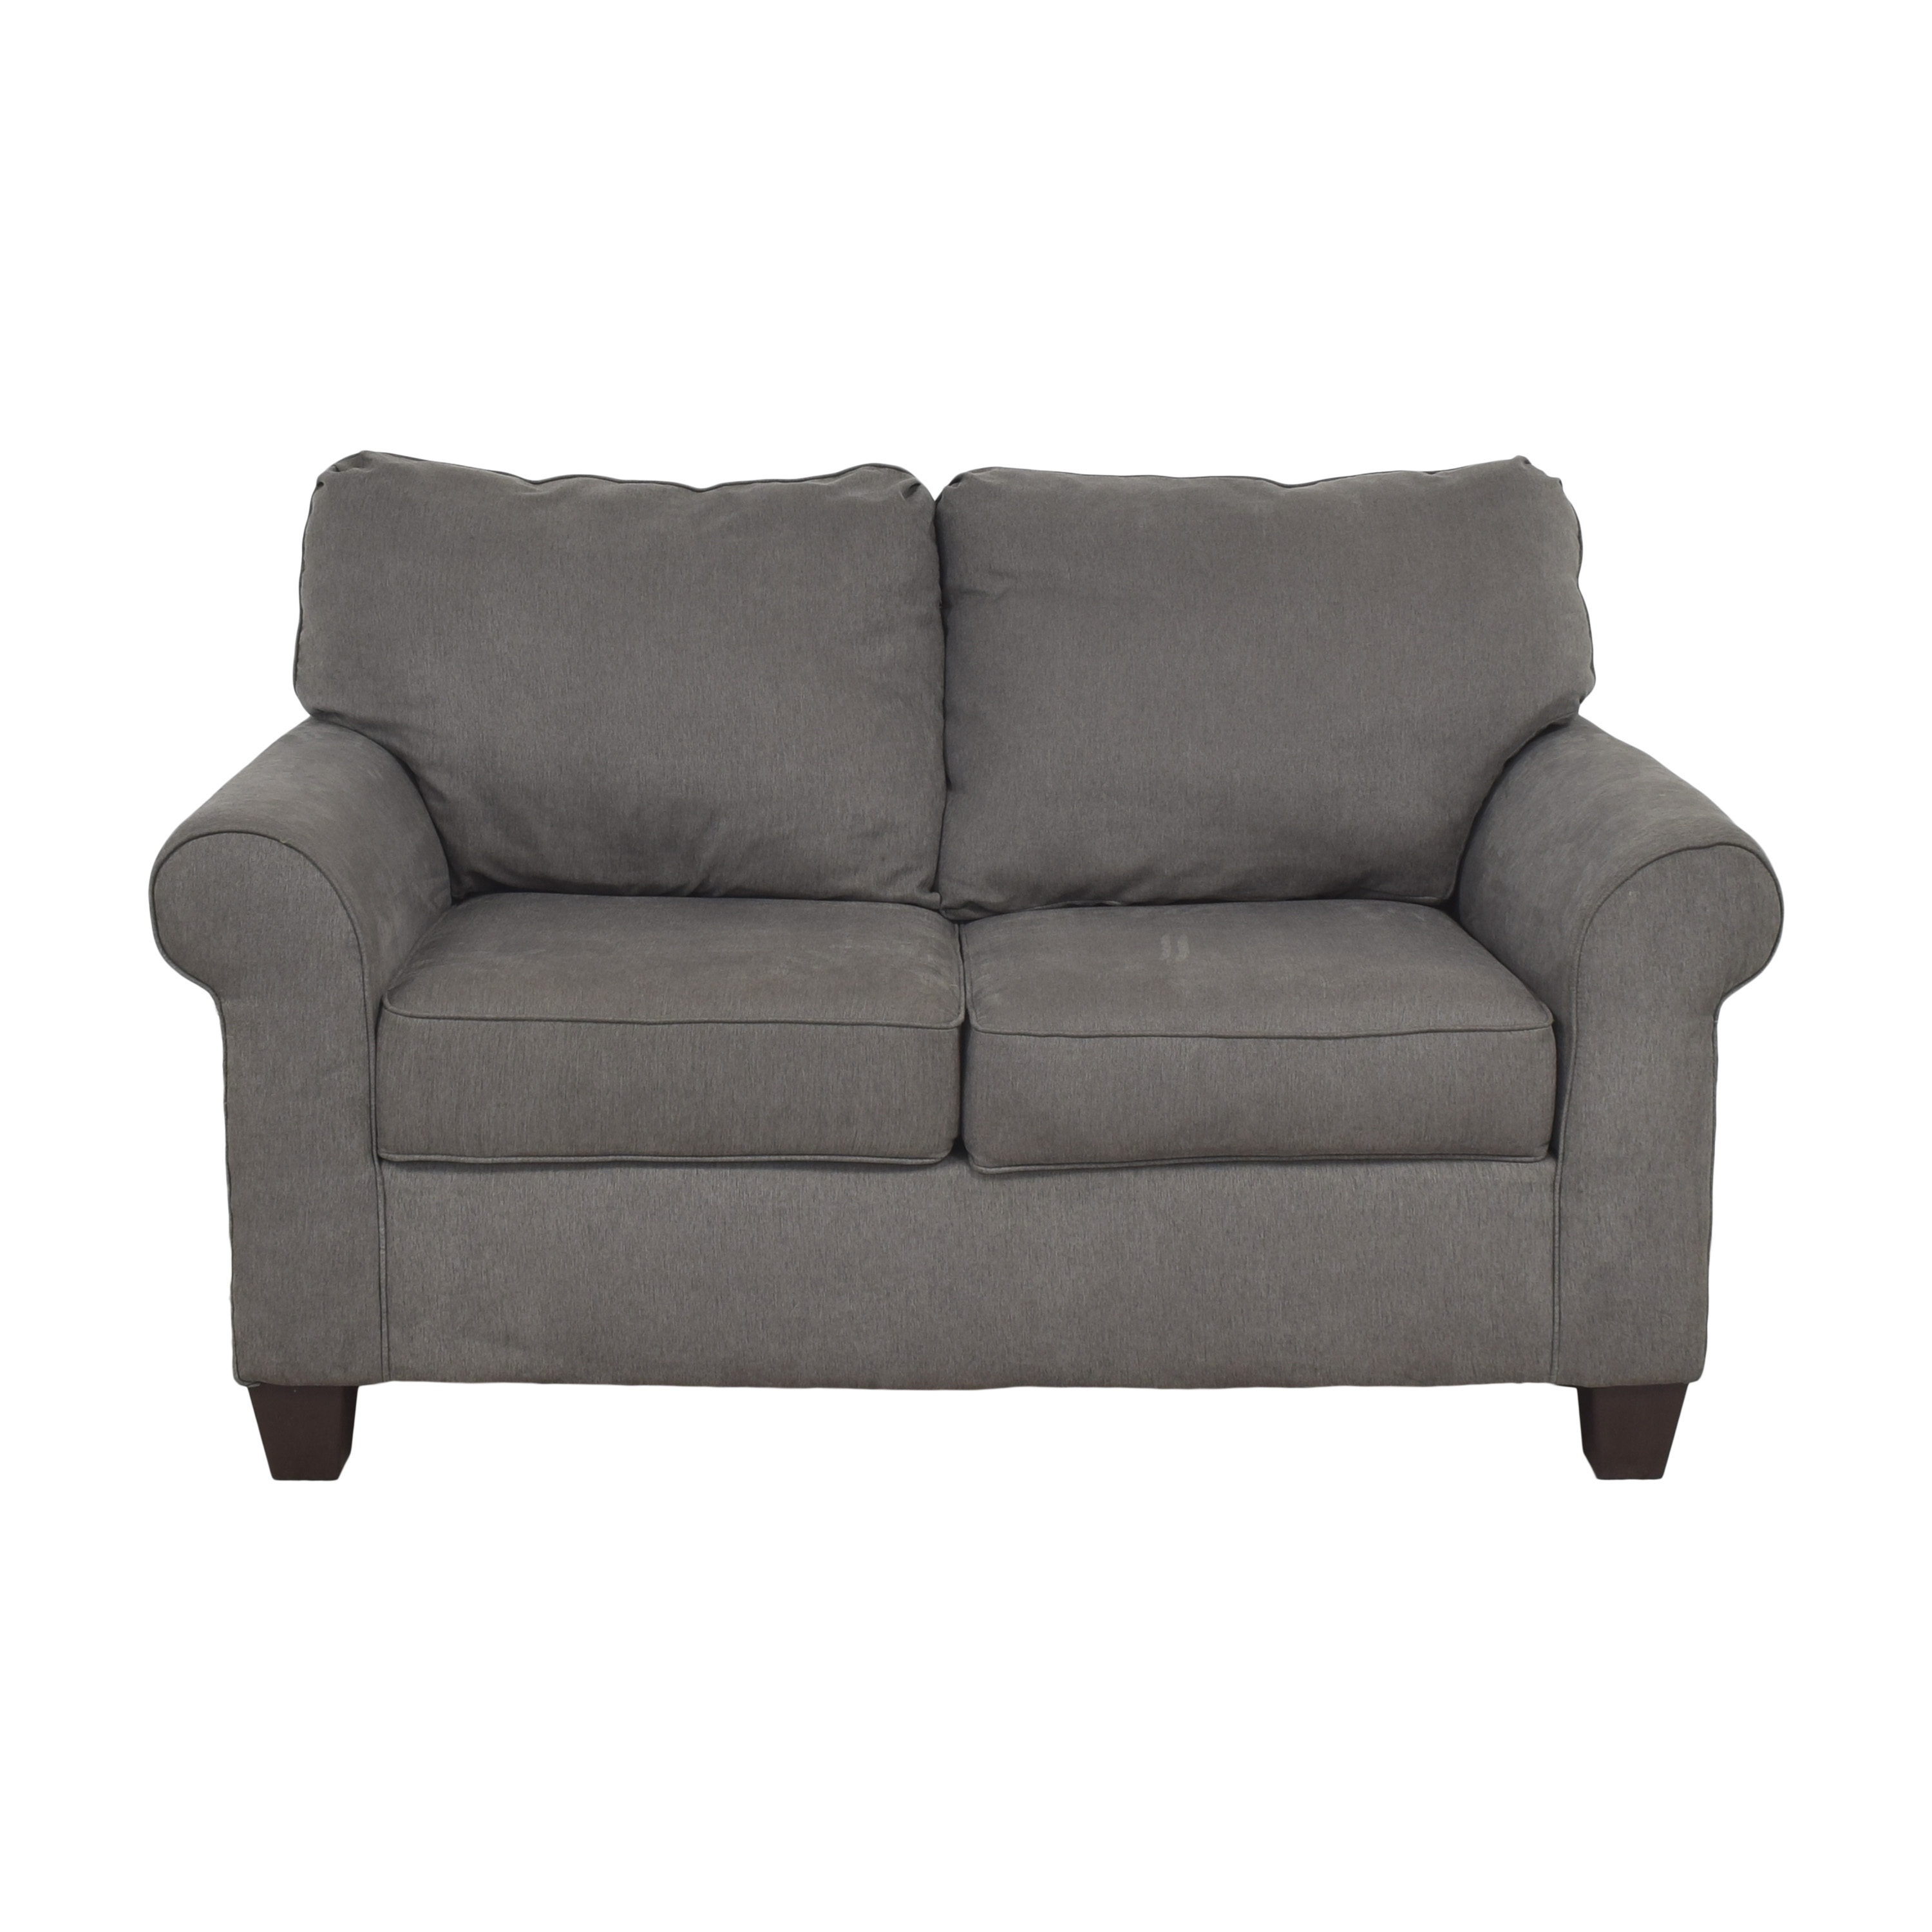 shop Raymour & Flanigan Tenley Loveseat Raymour & Flanigan Loveseats